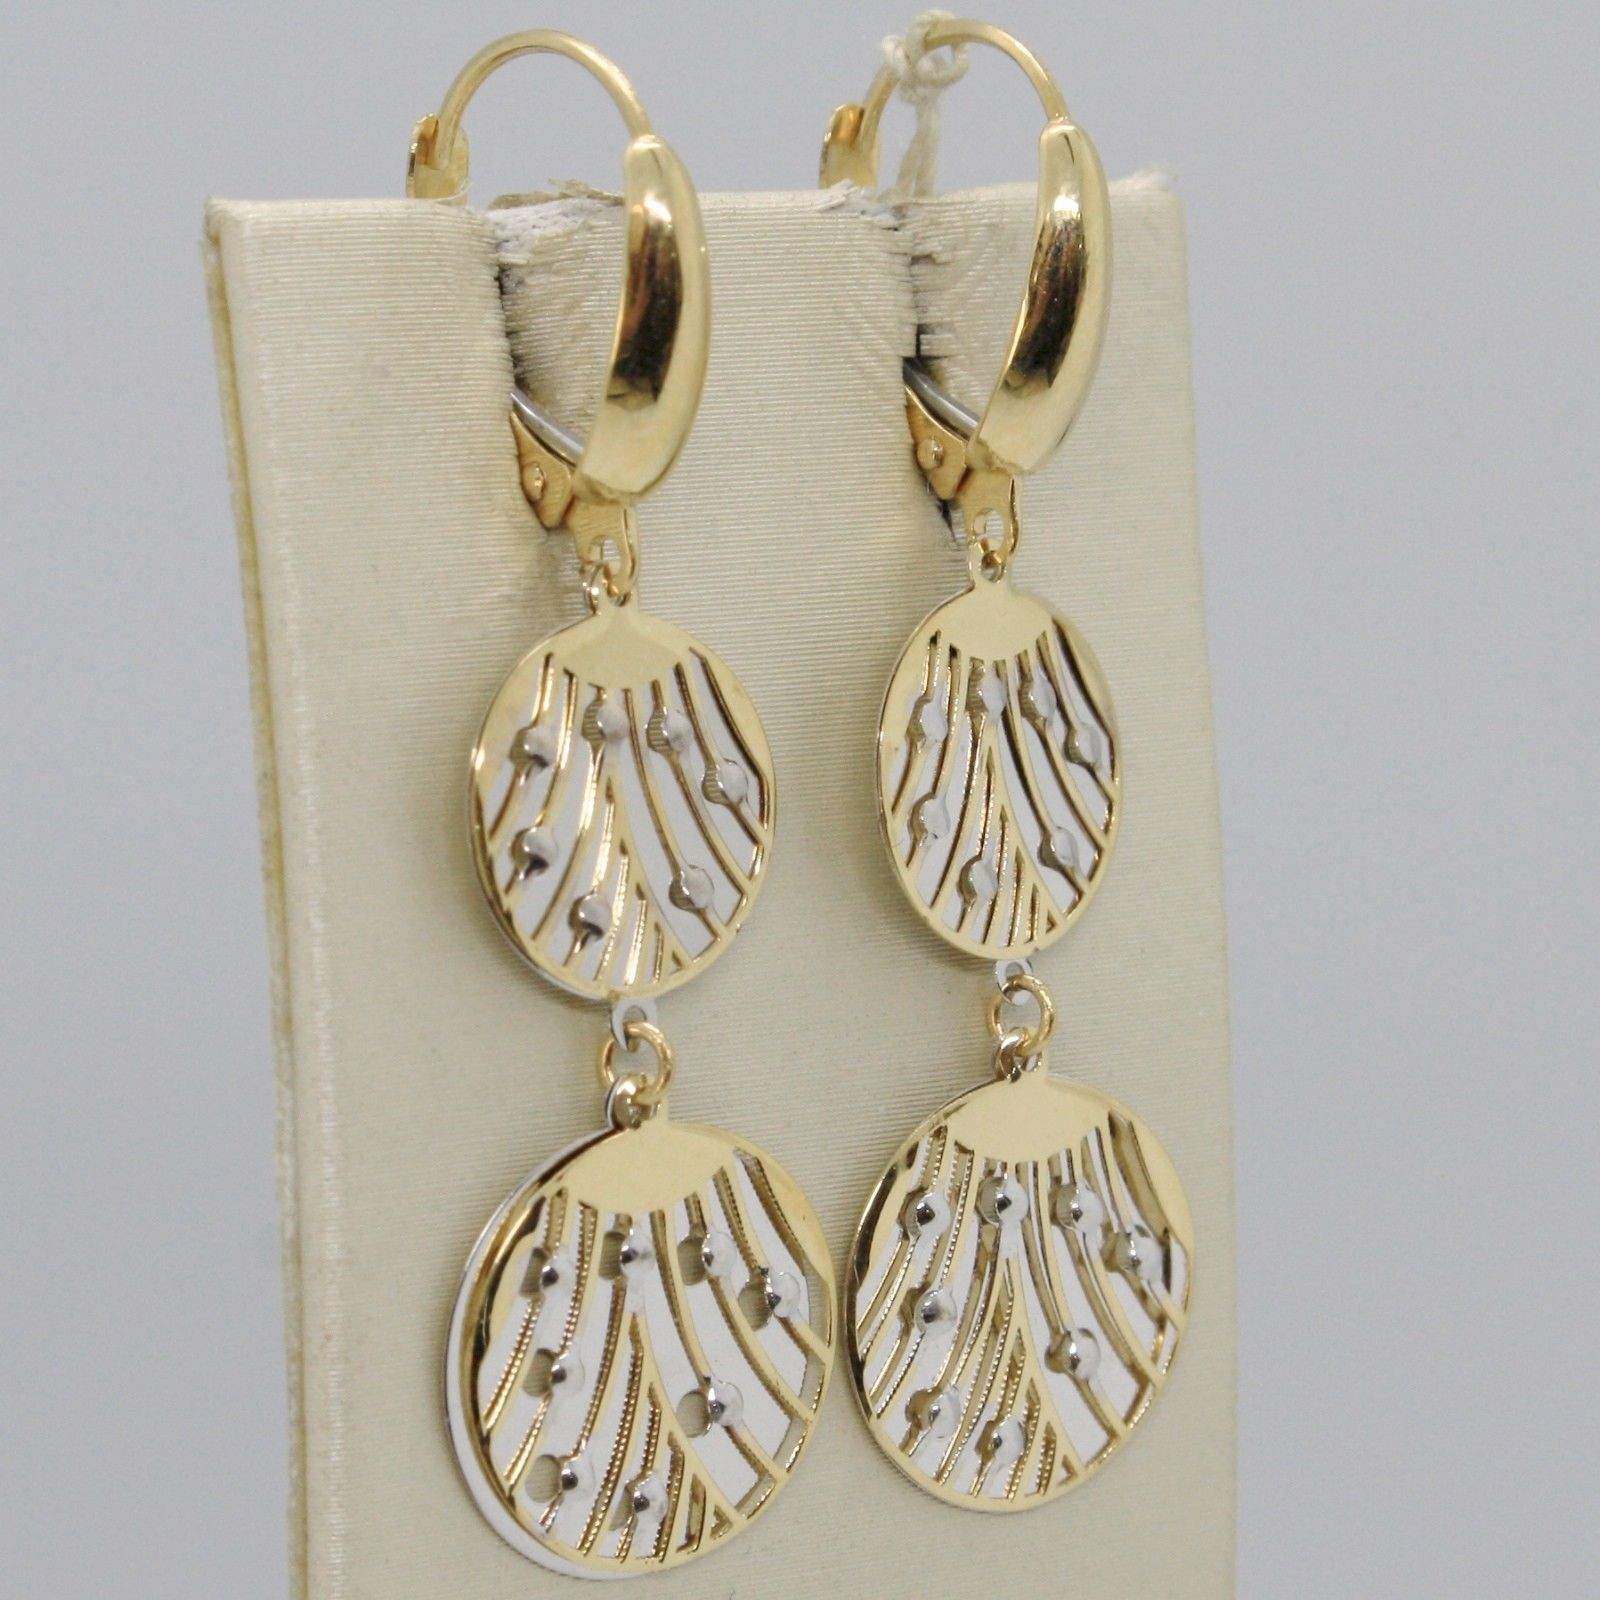 BOUCLES D'OREILLES OR JAUNE ET BLANC 750 18K DOUBLE DISQUES USINÉ MADE IN ITALY